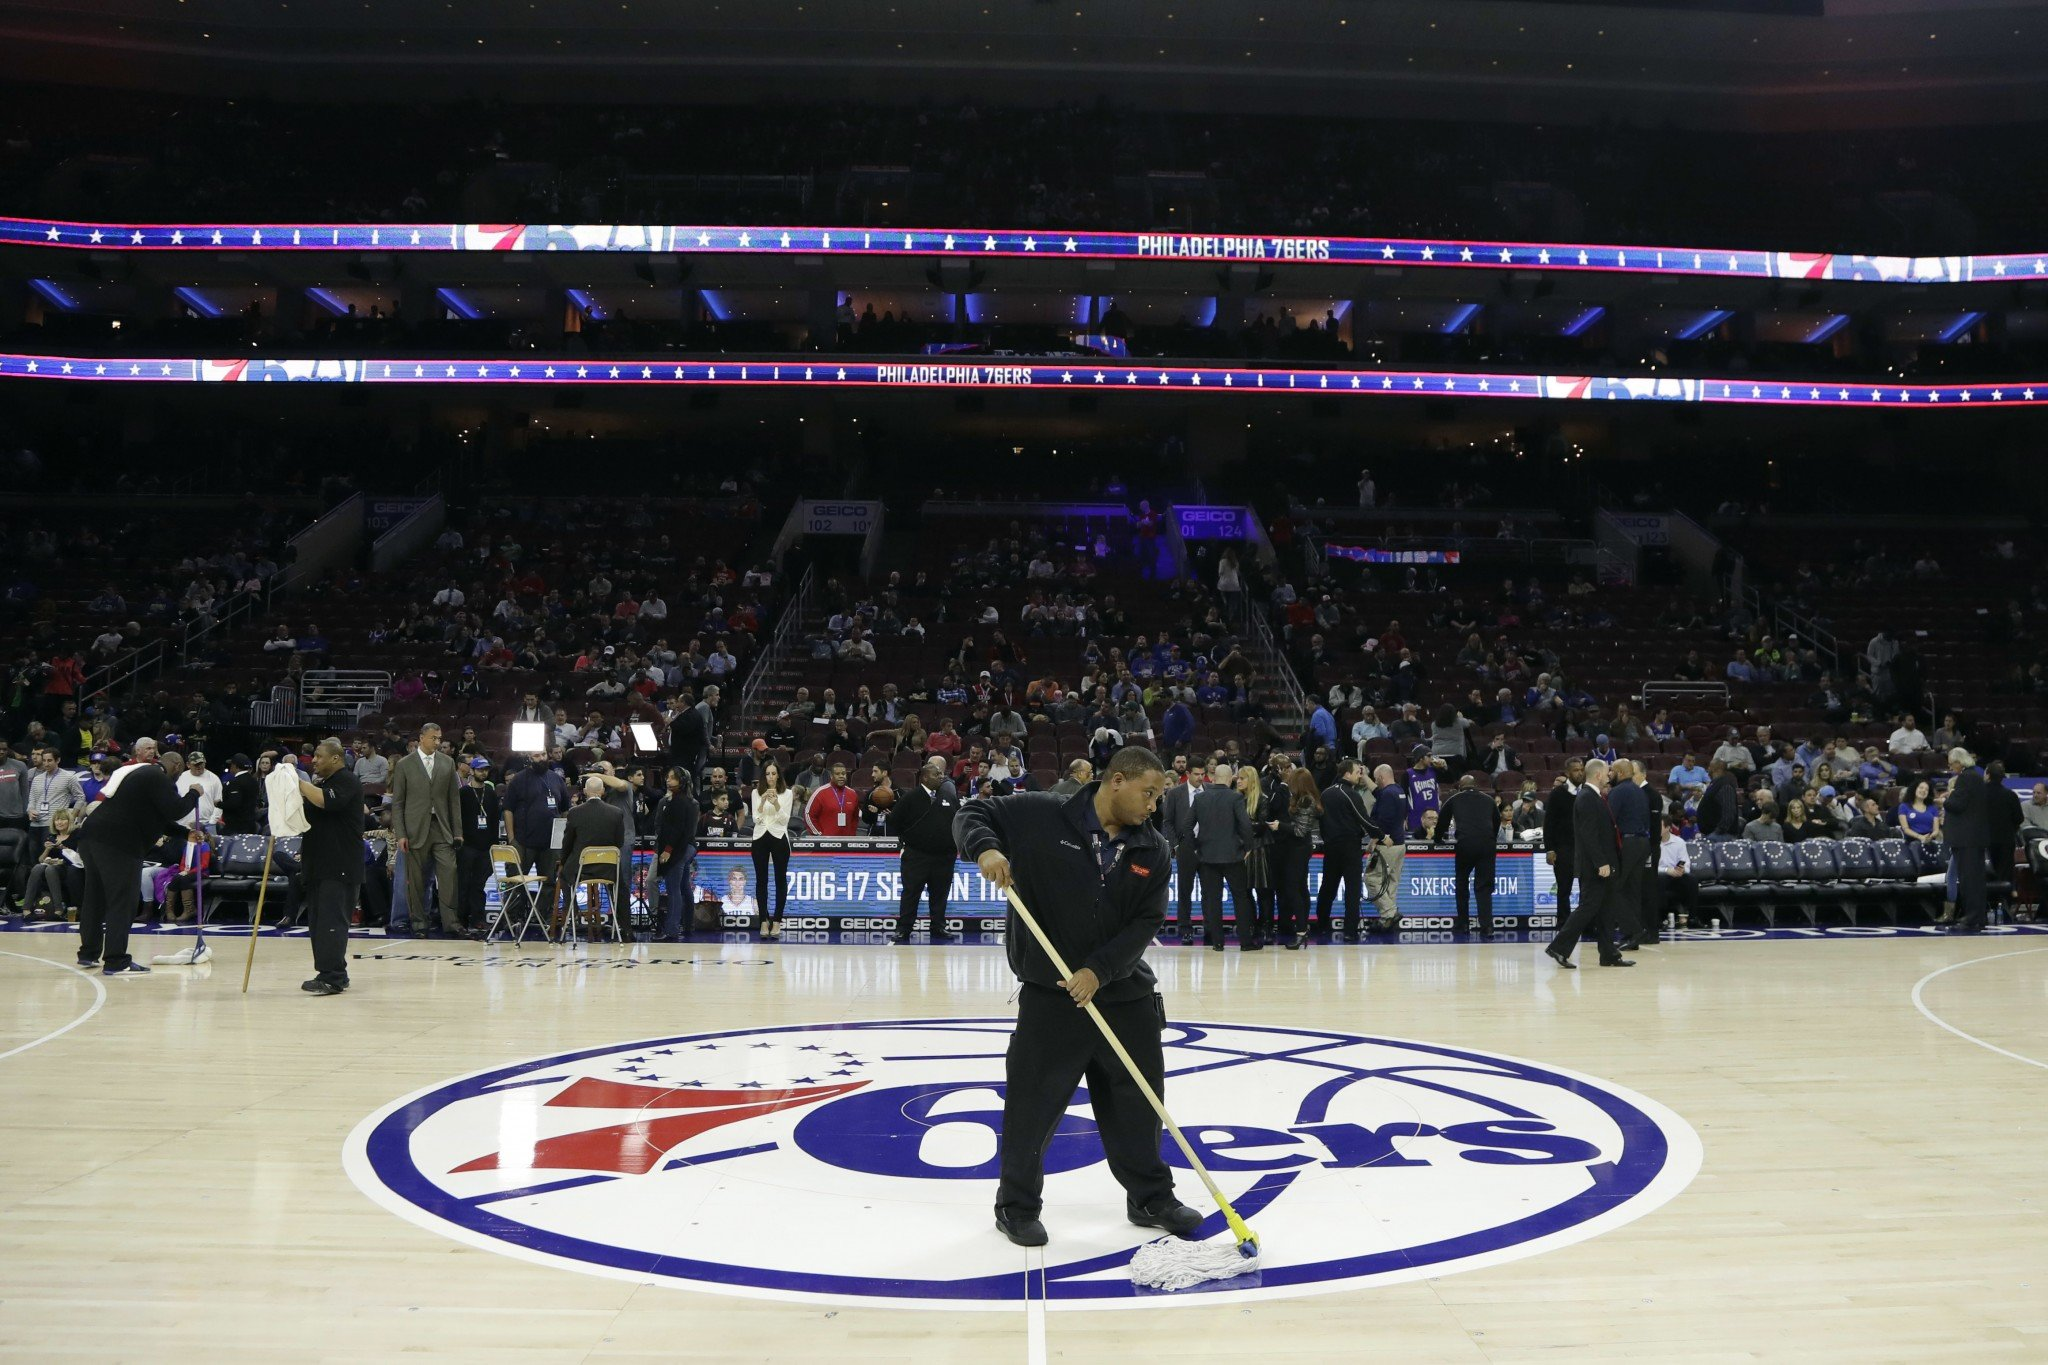 A building worker wipes the court before an NBA basketball game between the Philadelphia 76ers and the Sacramento Kings, Wednesday, Nov. 30, 2016, in Philadelphia. The start of the game was delayed due to a surface issue with the court. (AP)